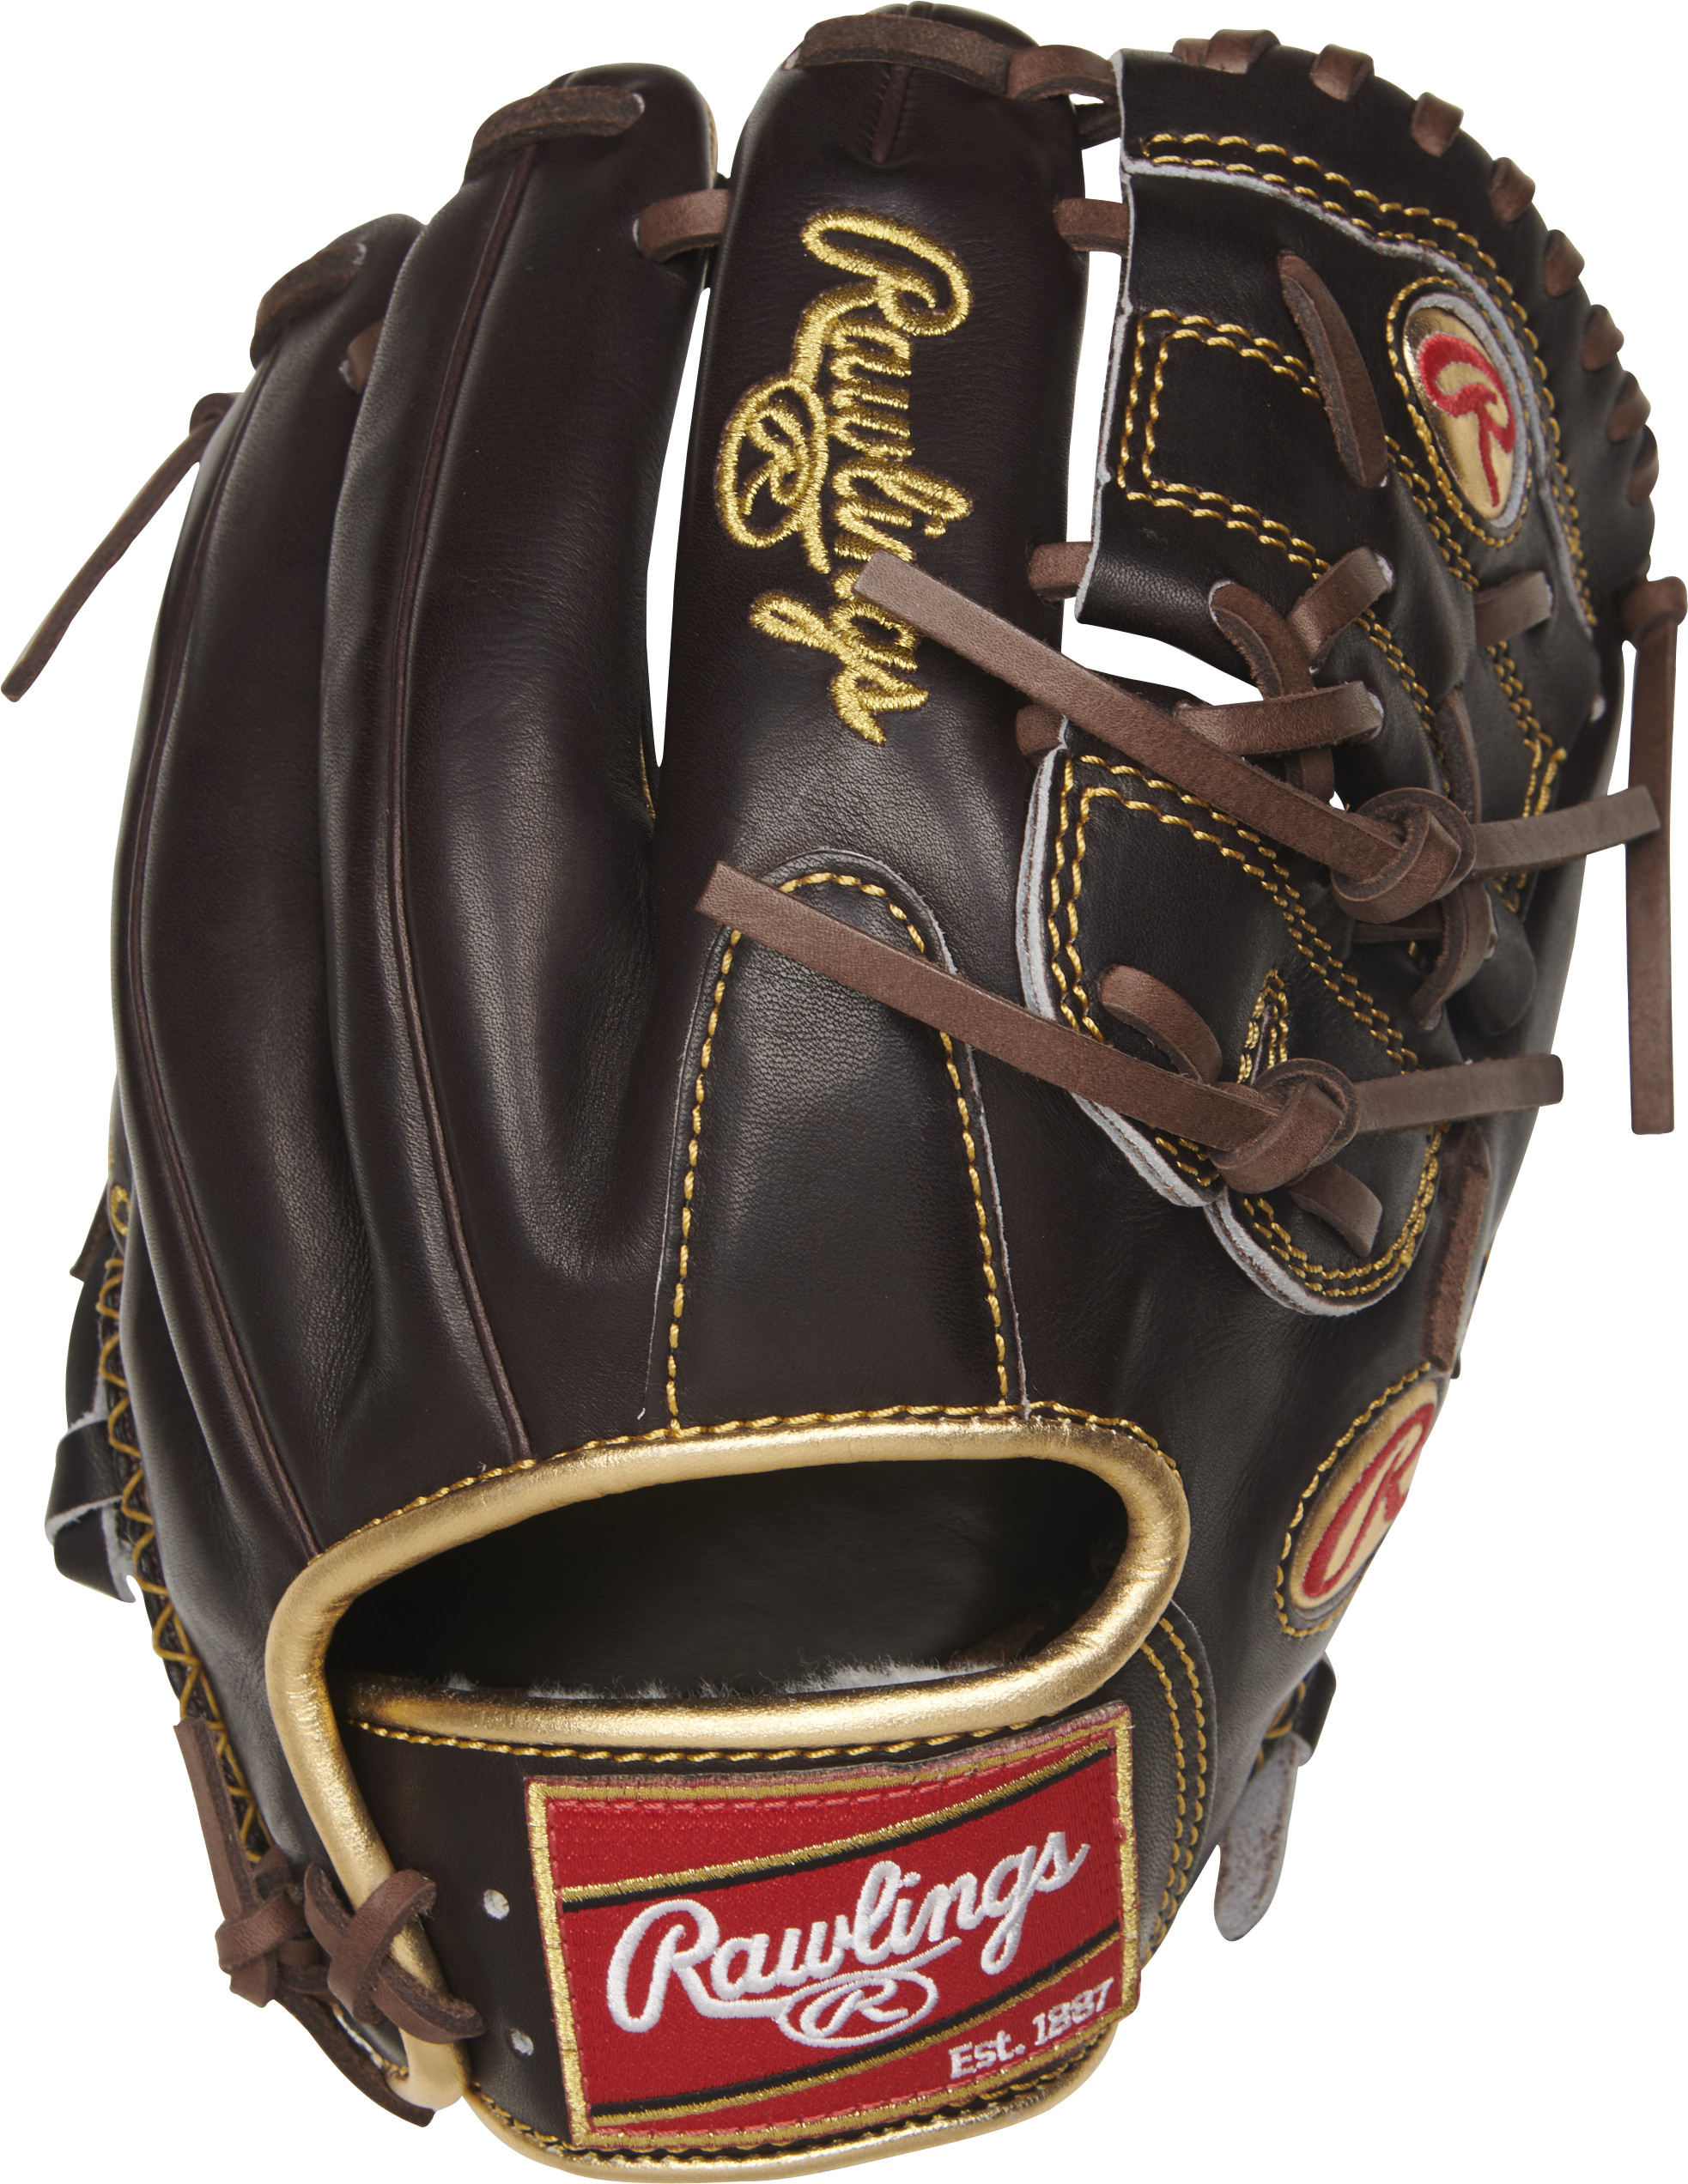 http://www.bestbatdeals.com/images/gloves/rawlings/RGG205-9MO-2.jpg